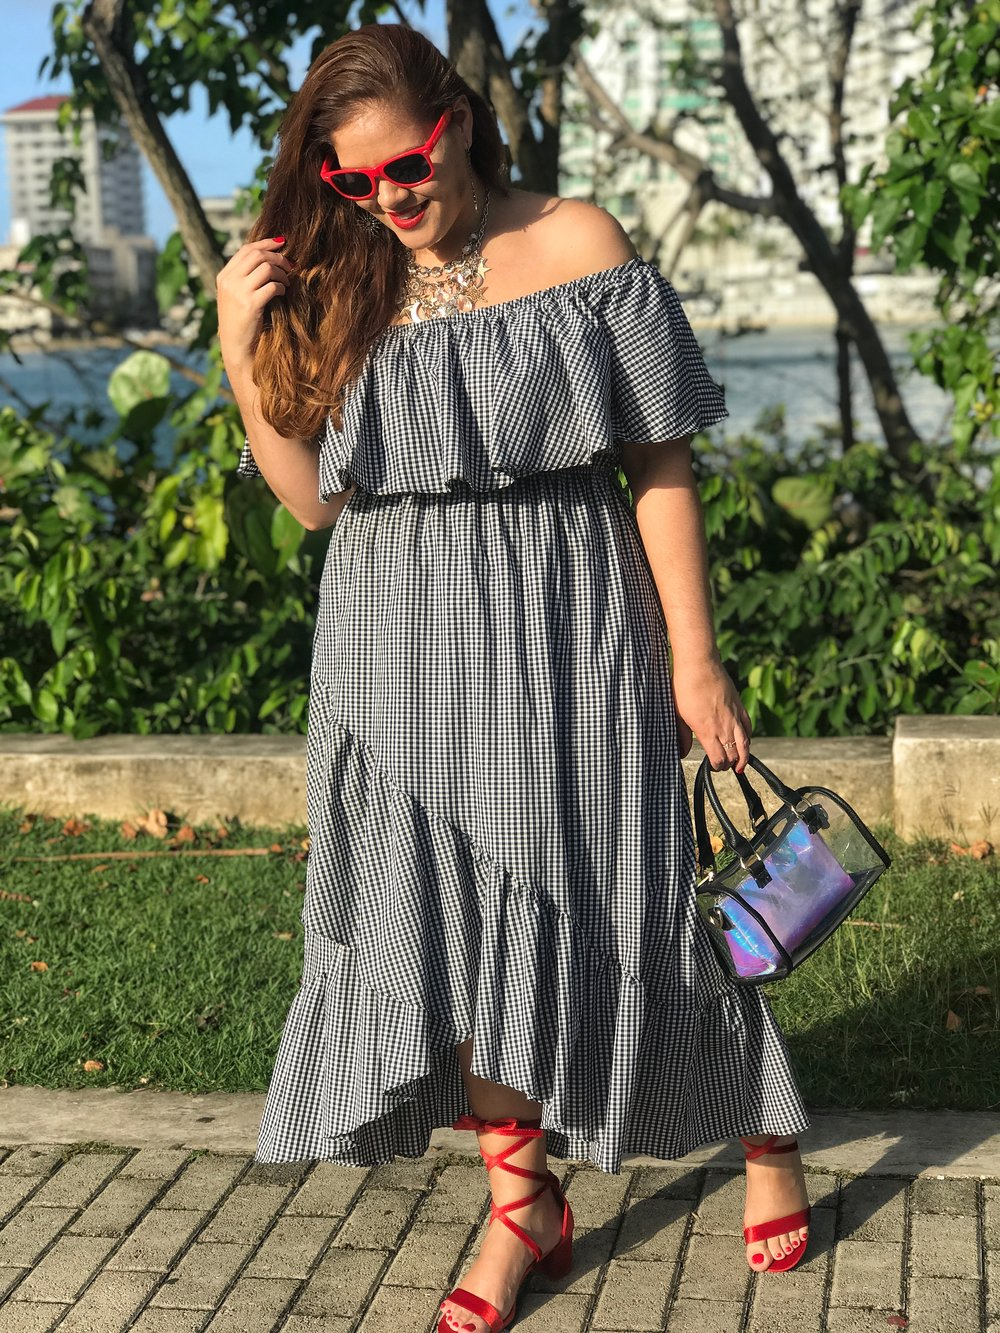 Off Shoulder Ruffled Gingham Dress  (50% Off Code: LOVEWALLET),  Red Sunglasses (Similar) ,  Star Multi Chain Necklace ,  Clear Bag (Similar) ,  Velvet Red Lace-Up Sandals